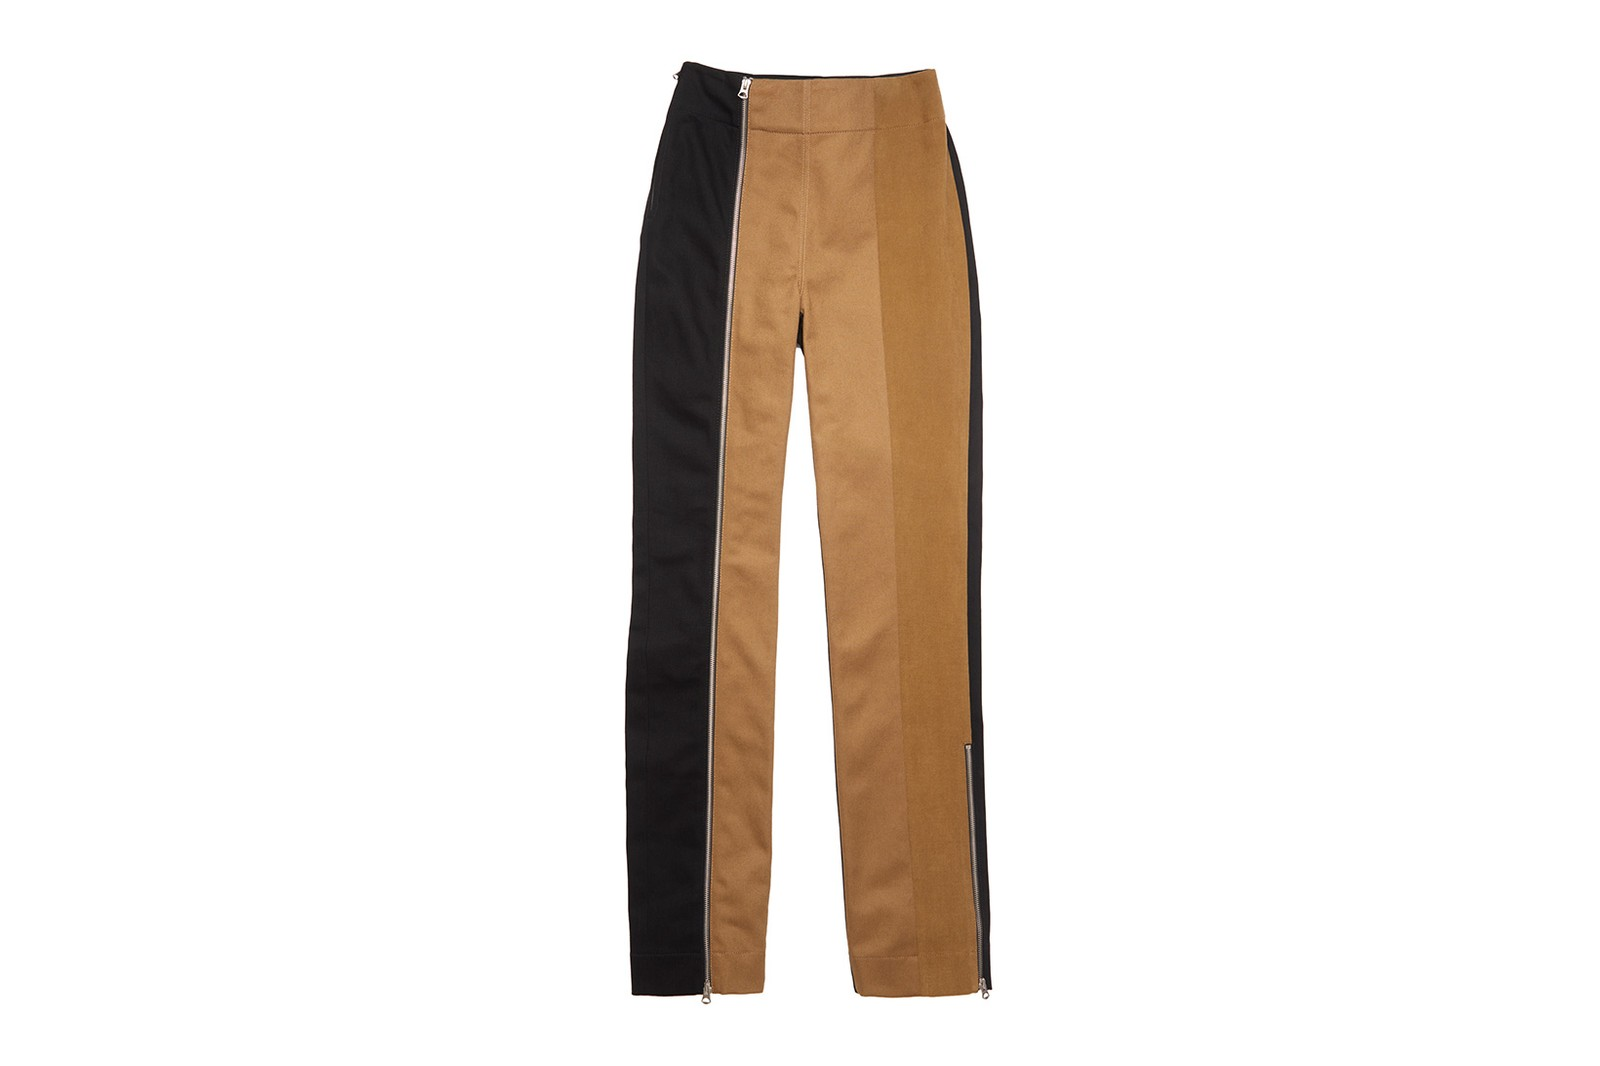 acne studios repurposed drops model upcycled sustainable denim leather jeans blazers pants capsule release